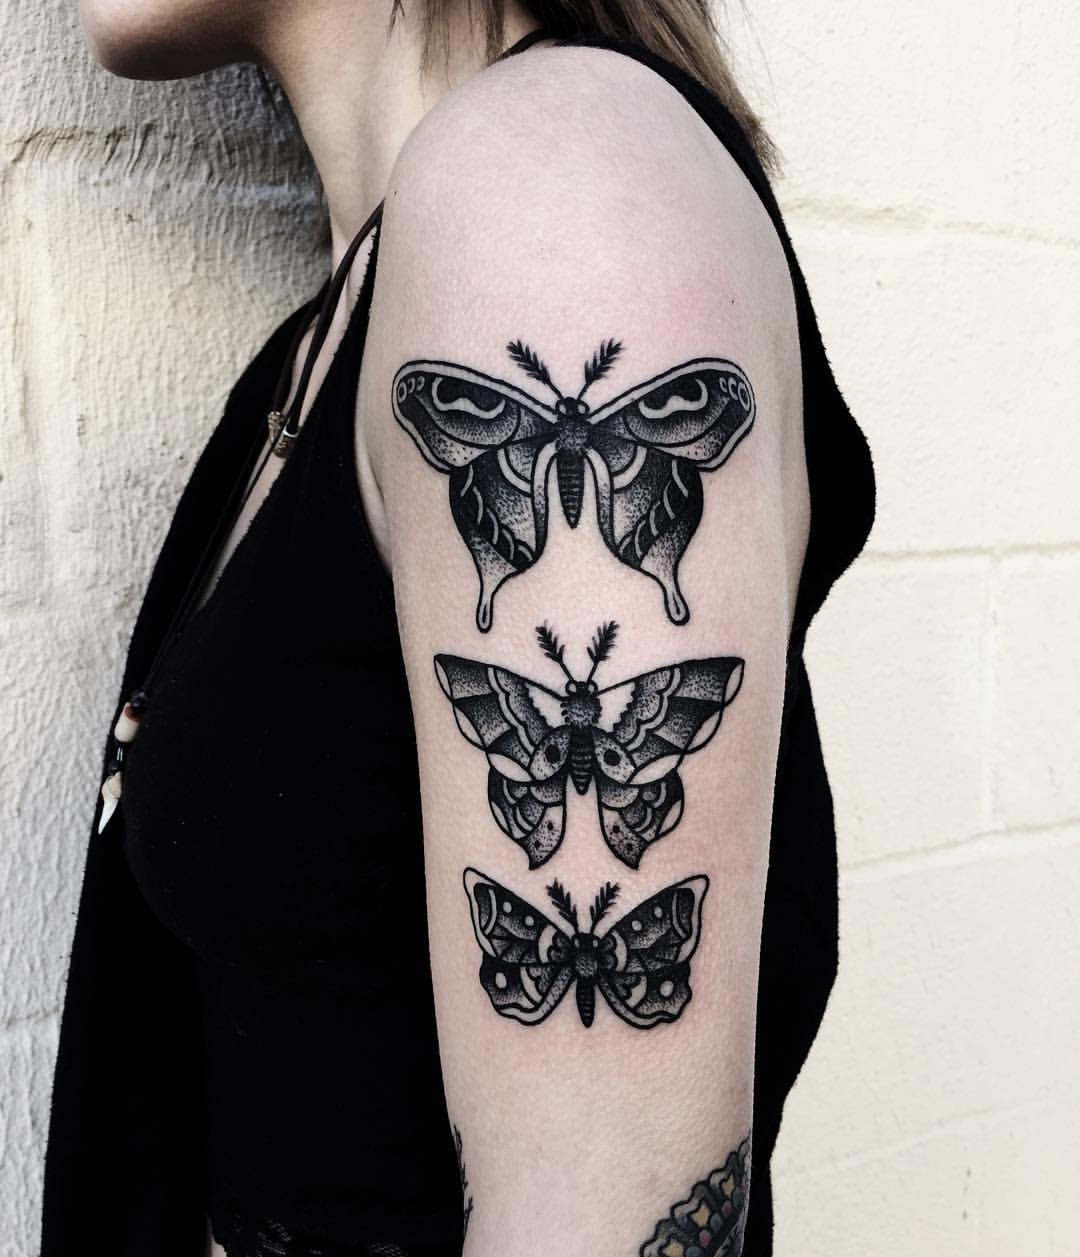 Three black butterflies on the left arm